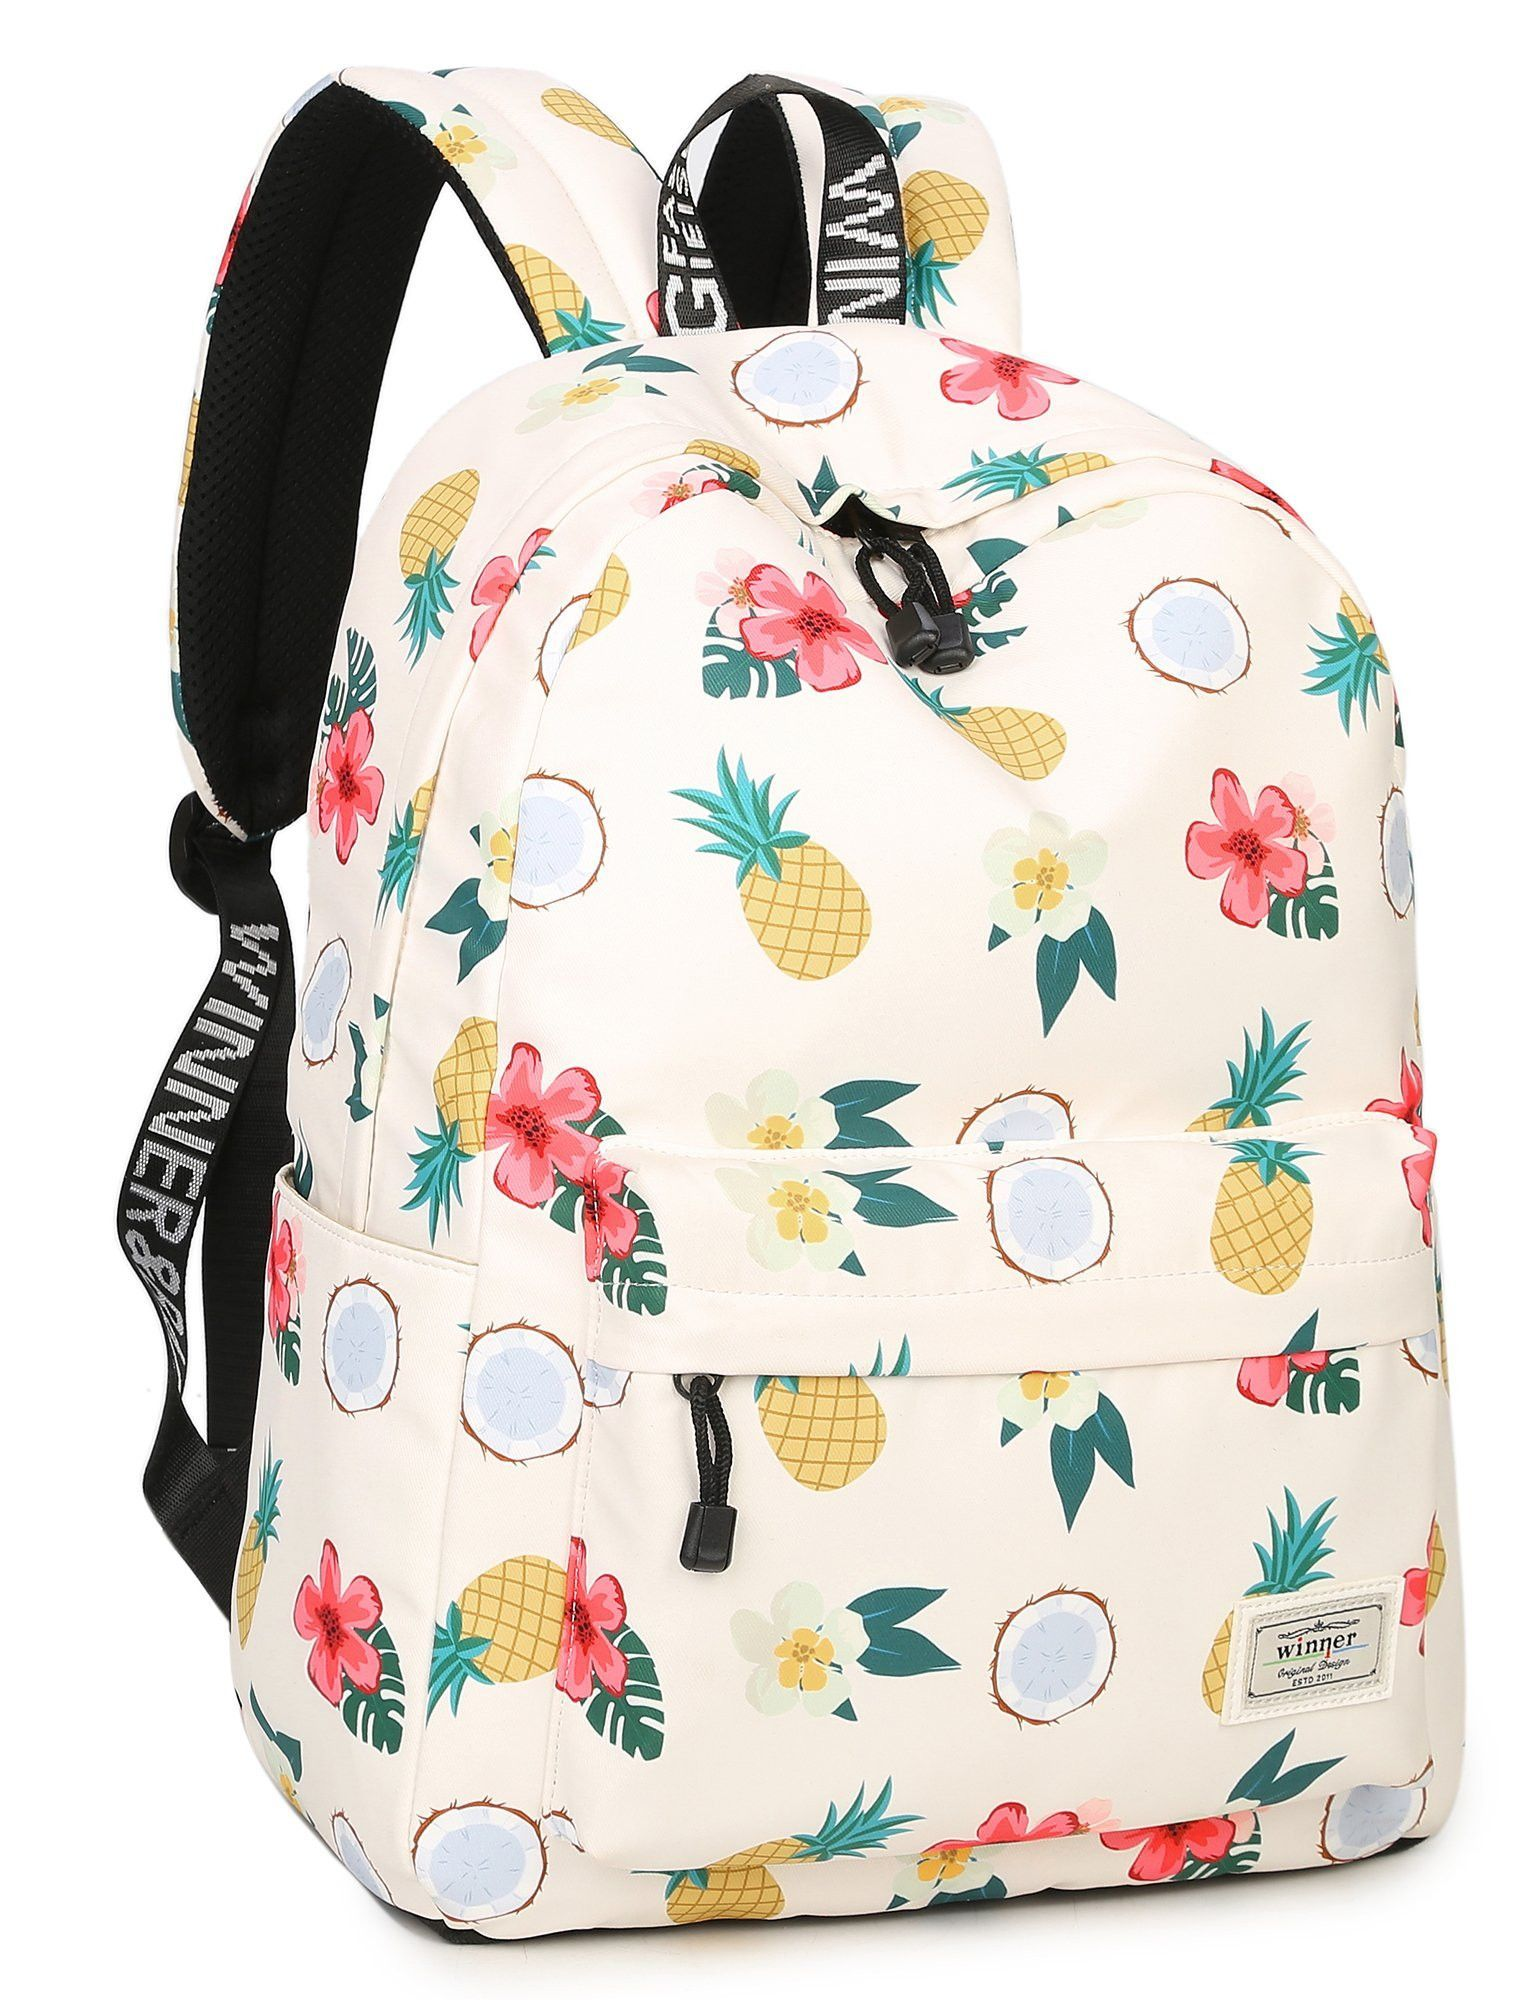 2da7e2f8a829 School Bookbags for Girls Floral Pineapple Printed Backpack College Bags  Women Daypack by Leaper